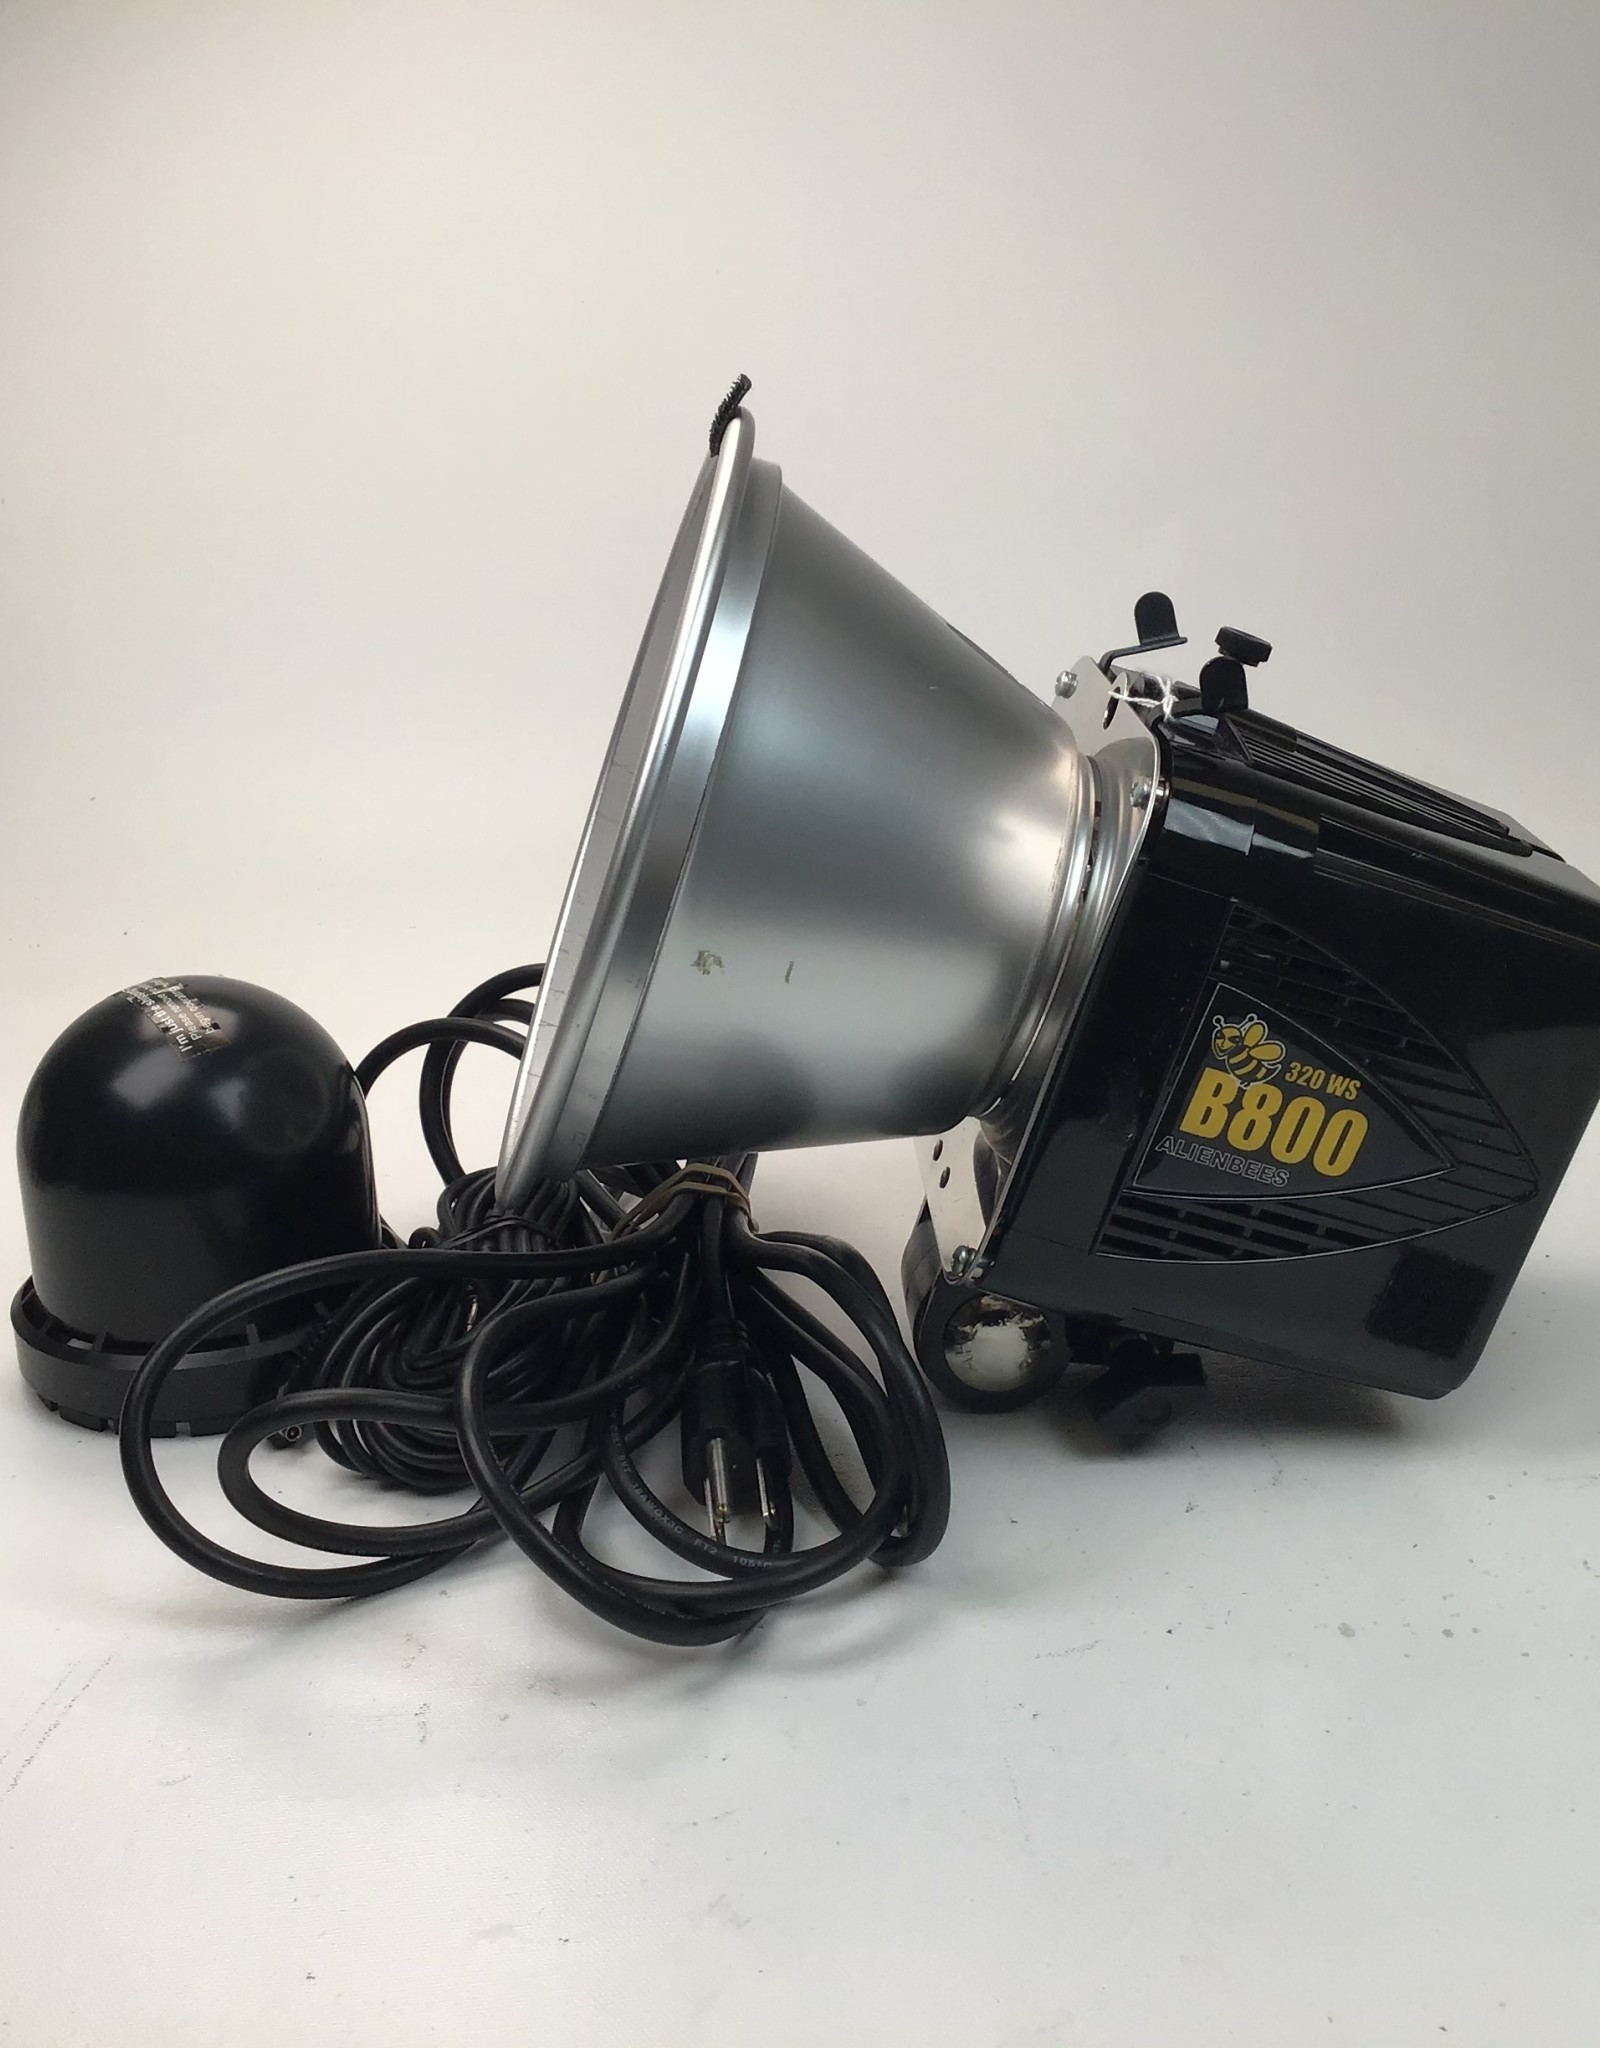 Alien Bees Alien Bee B800 w/ Reflector and PC cable Used EX